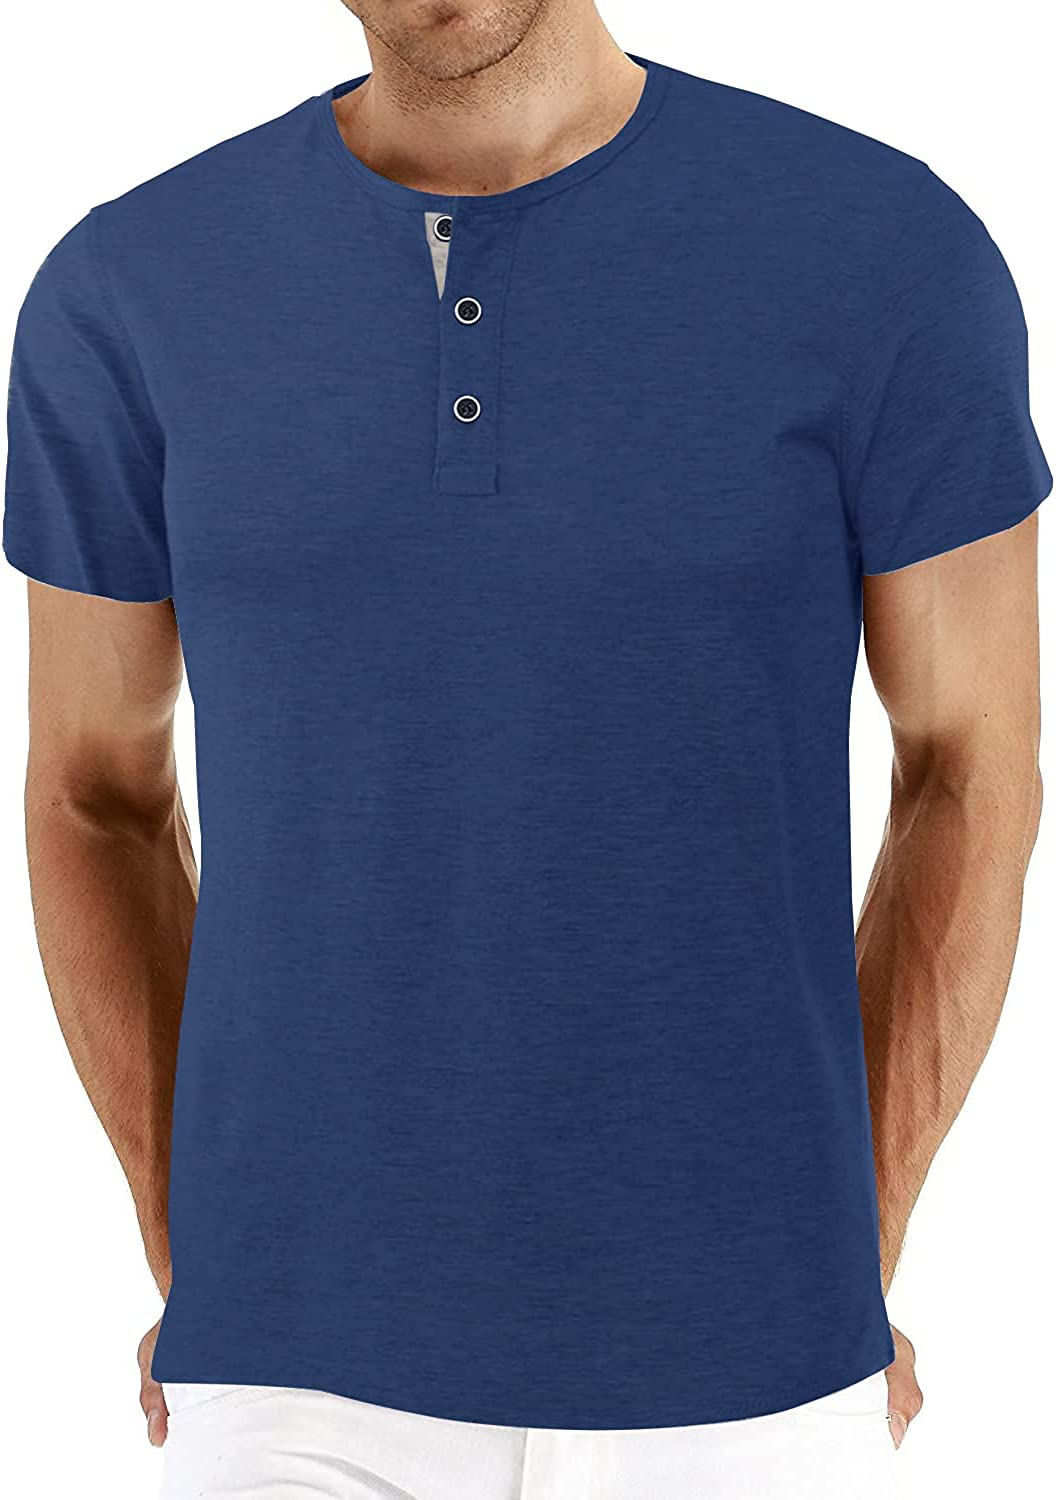 BBDMY Men's Fashion Casual Front Placket Short Sleeve Henley T-Shirts Cotton Shirts